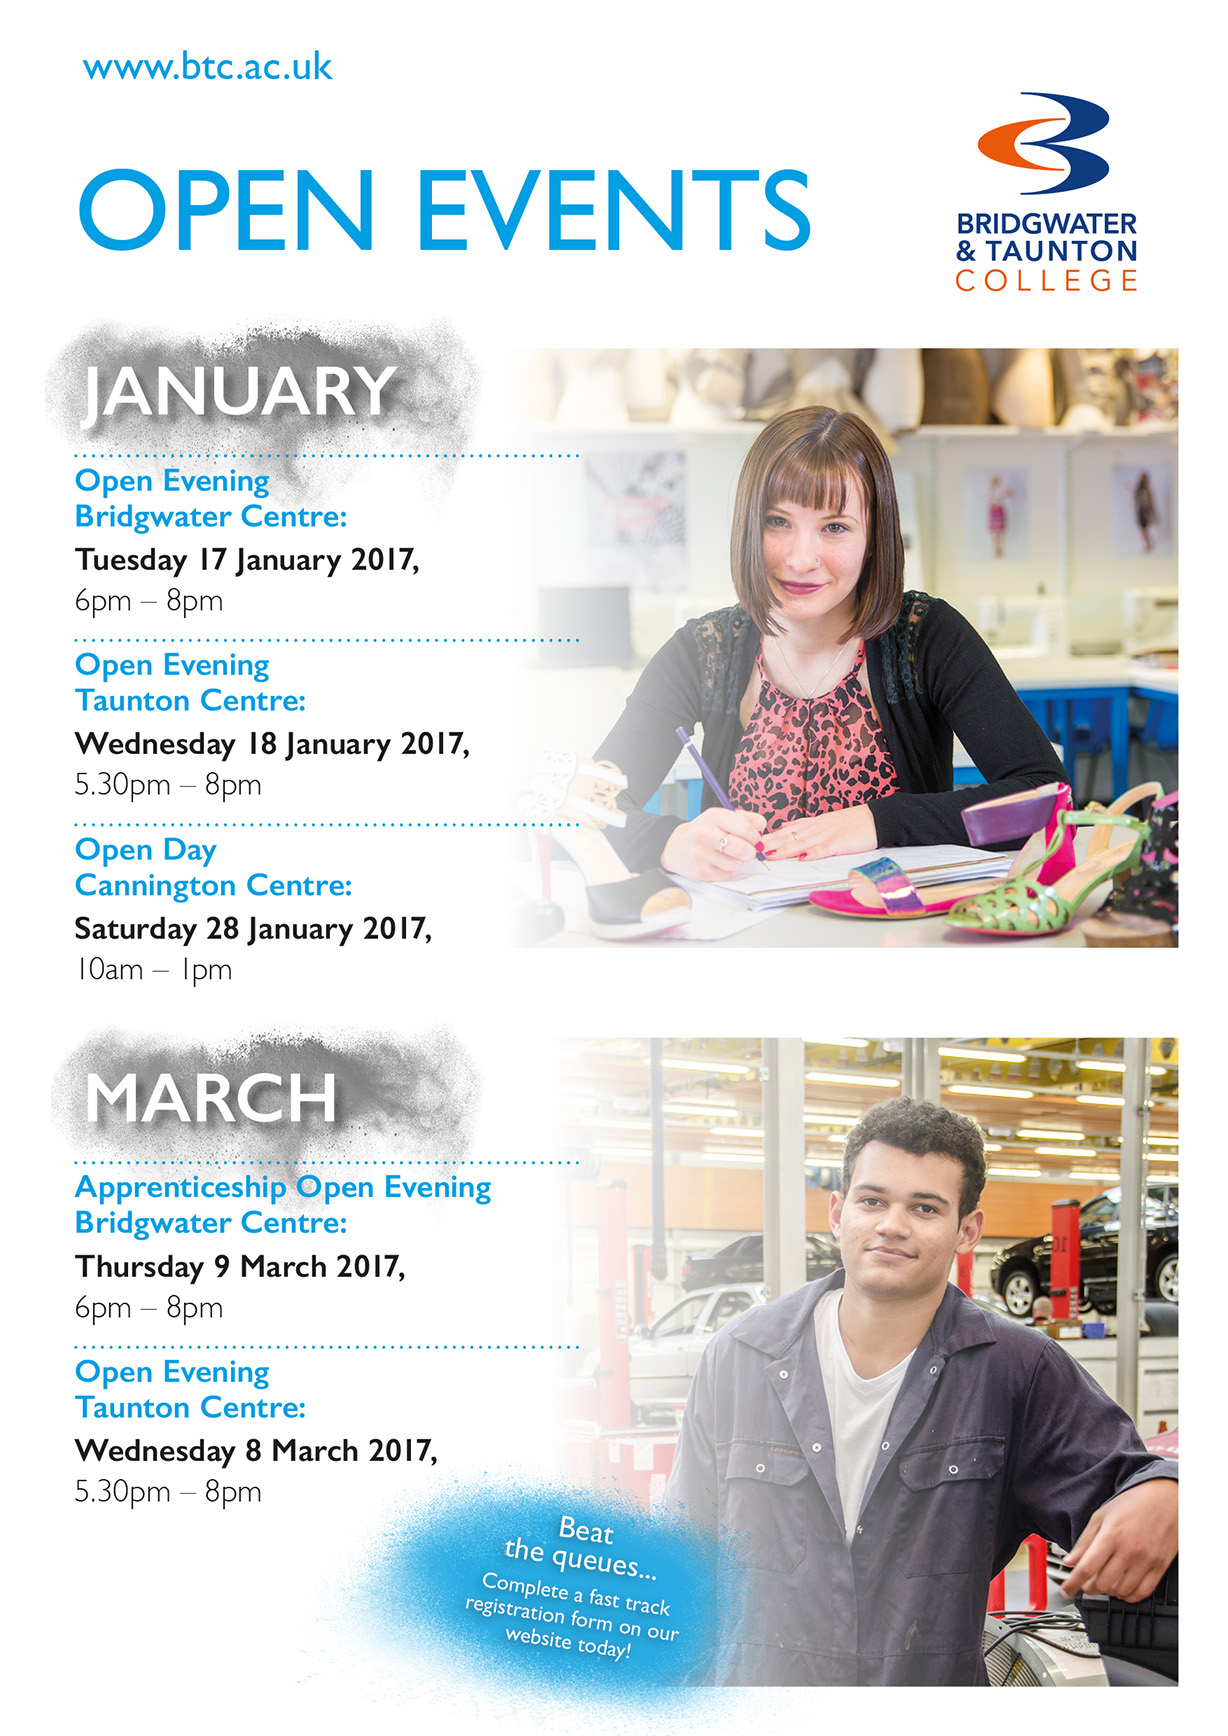 Bridgwater and Taunton College, Open Evening at Taunton Centre